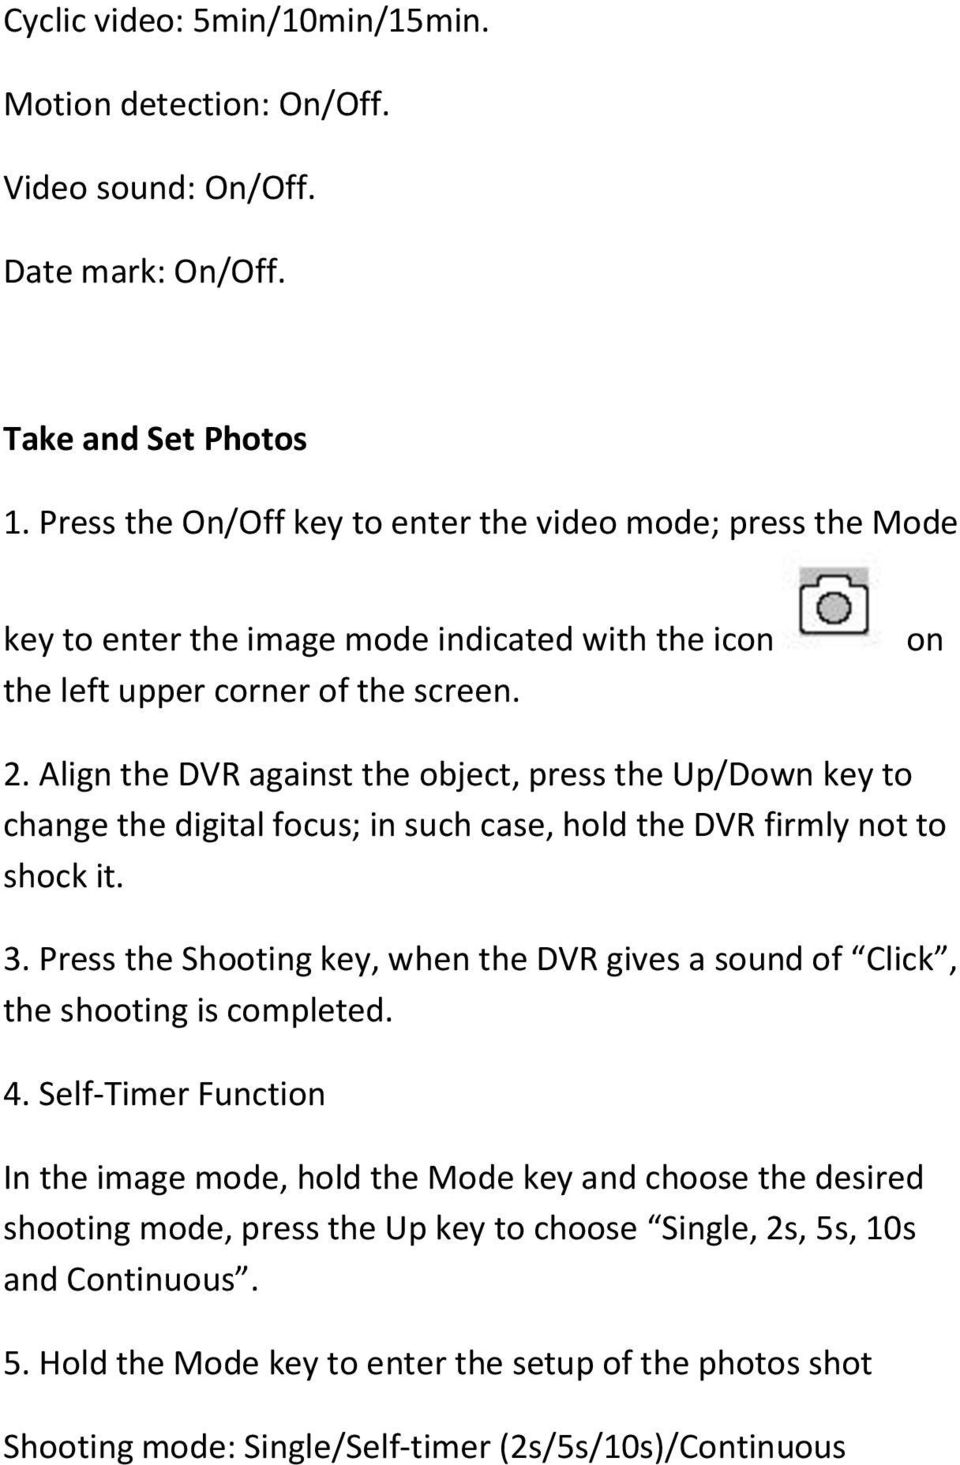 Align the DVR against the object, press the Up/Down key to change the digital focus; in such case, hold the DVR firmly not to shock it. 3.